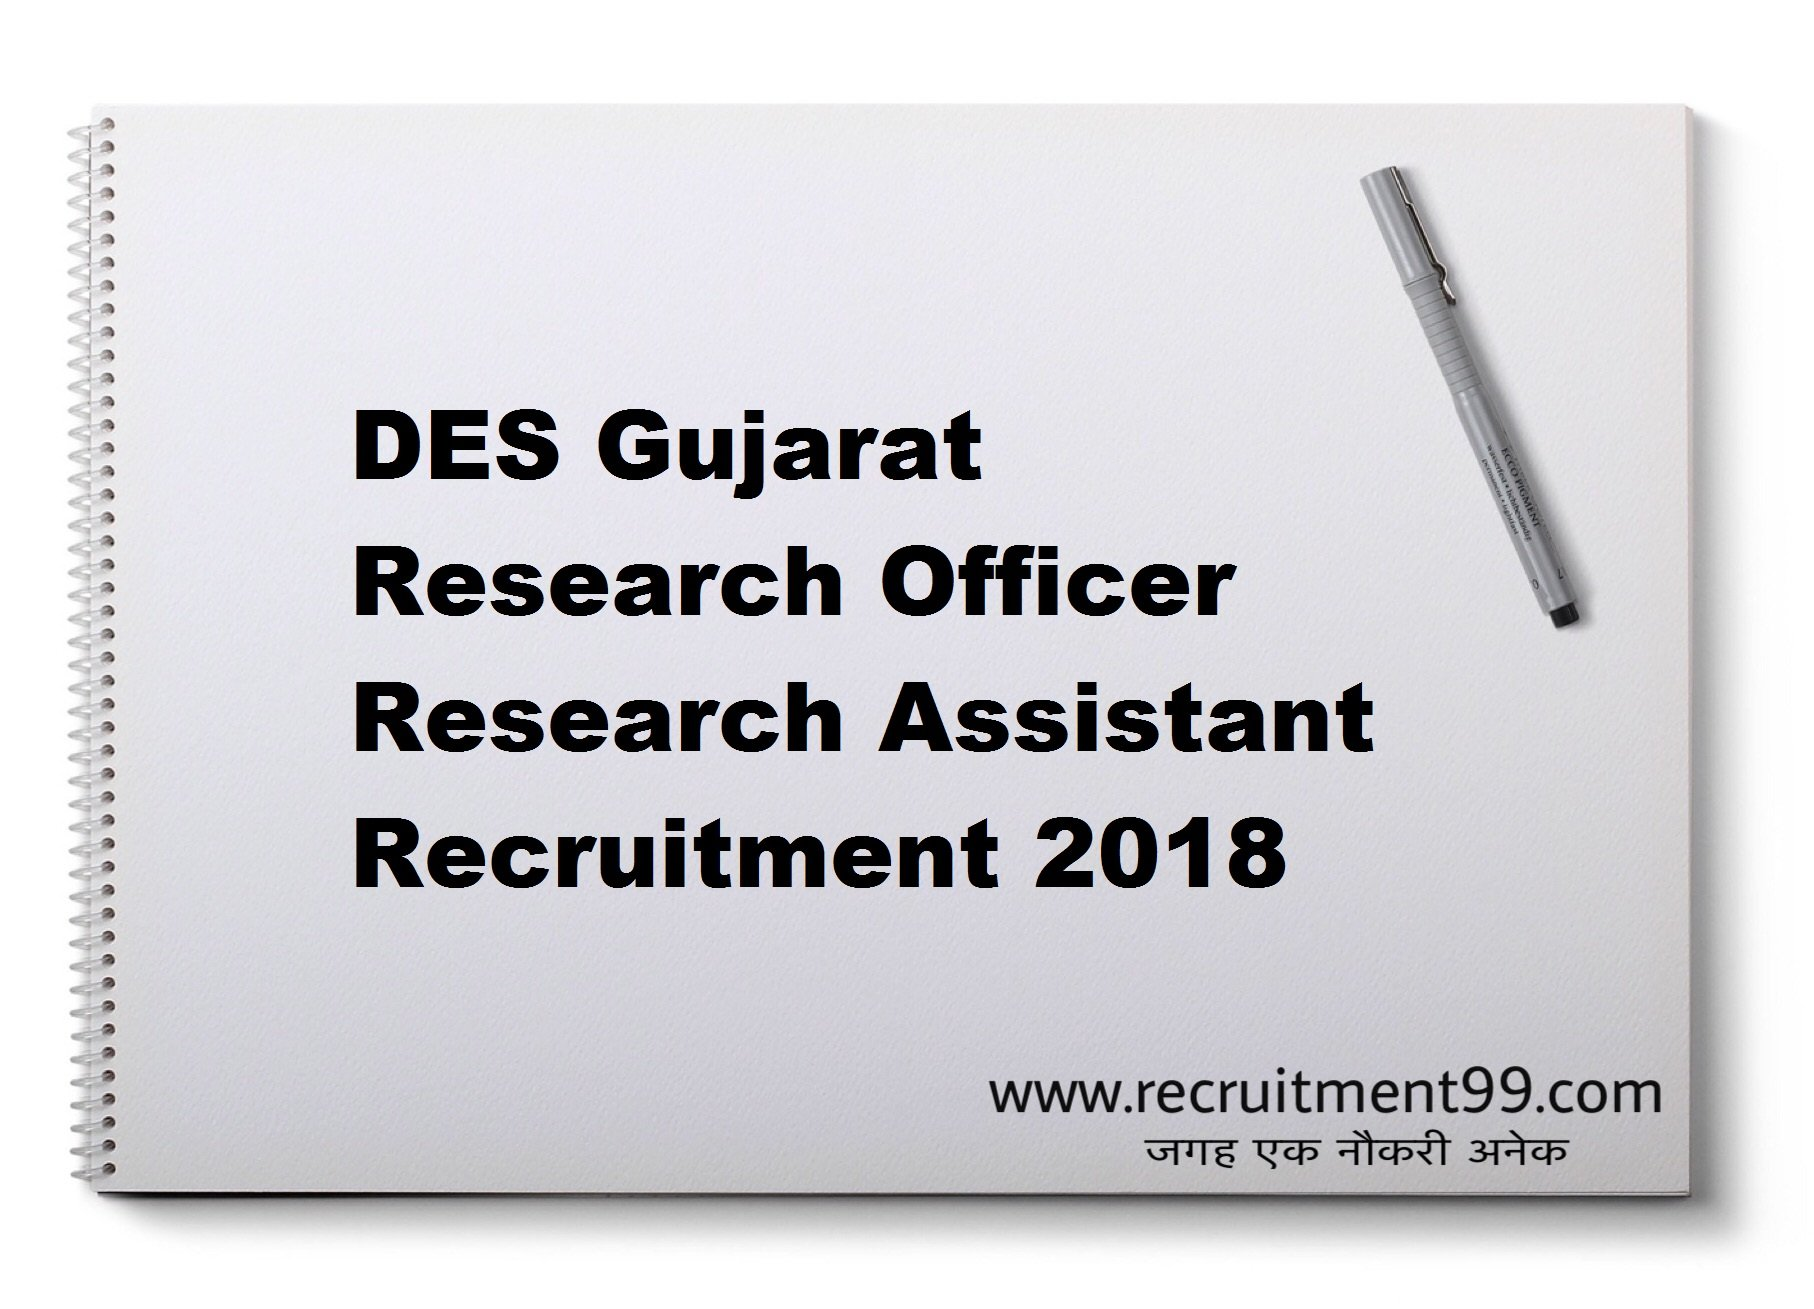 DES Gujarat Research Officer Research Assistant Recruitment Admit Card Result 2018